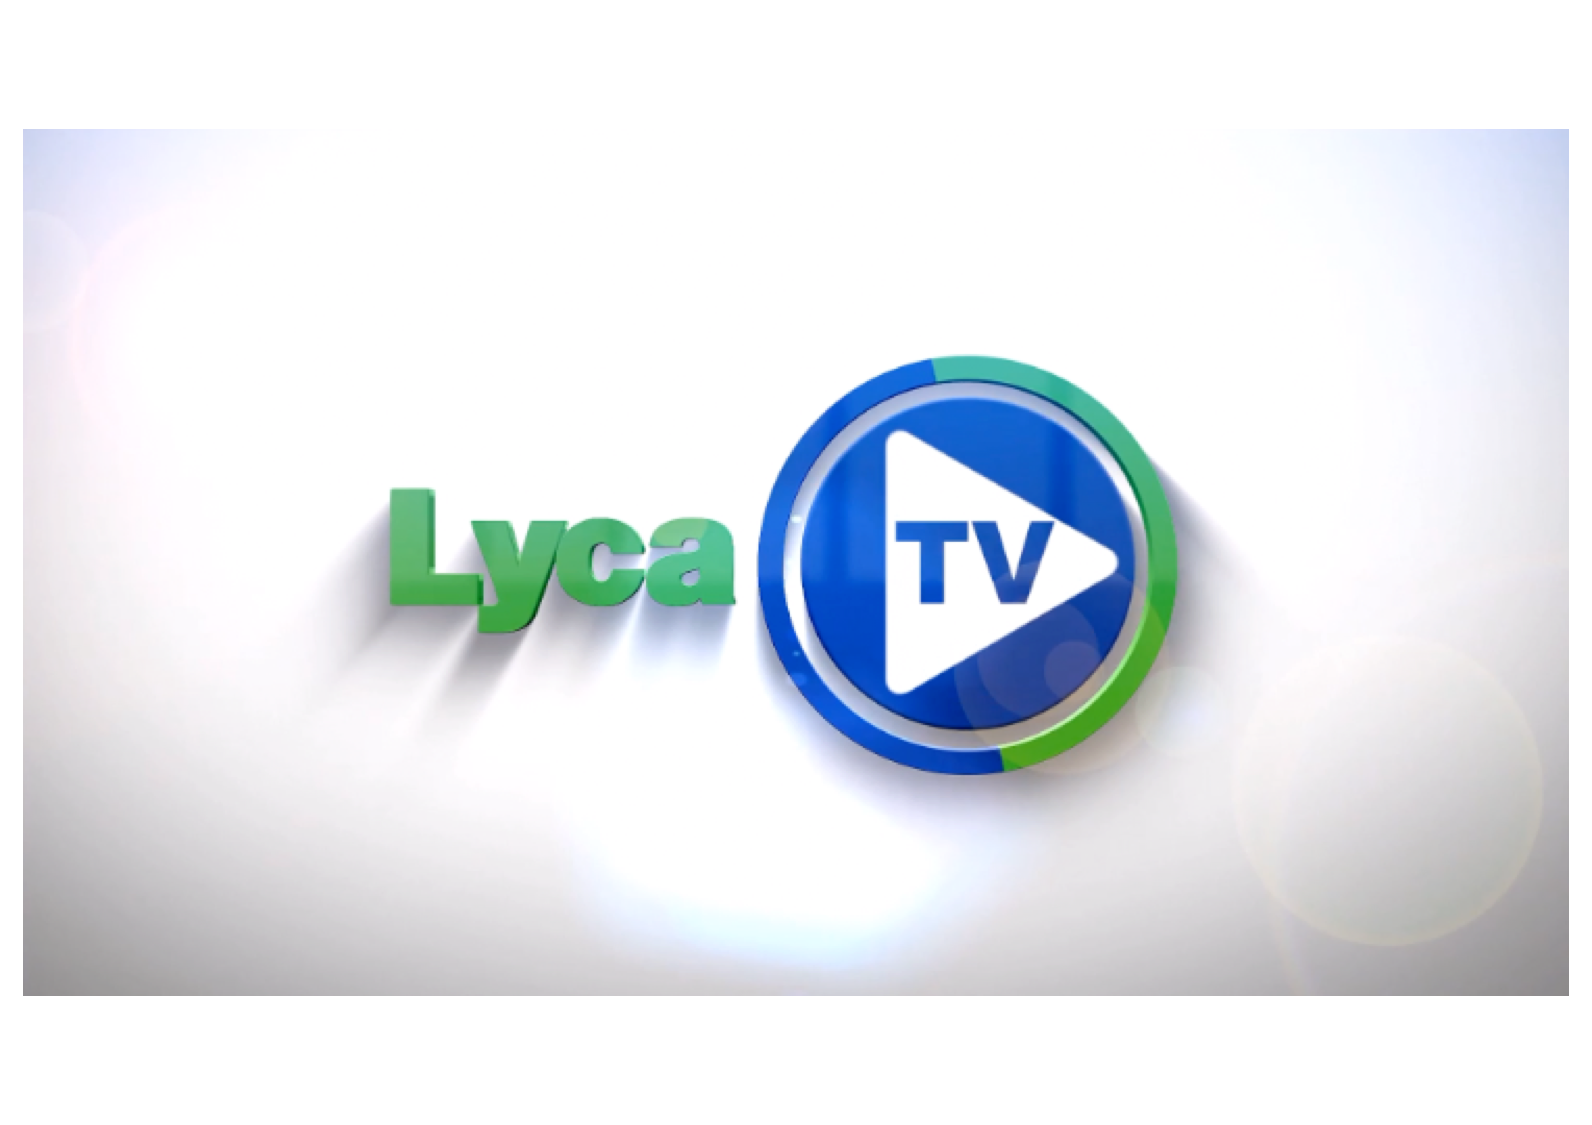 LycaTV Logo Animation | Assyst Media